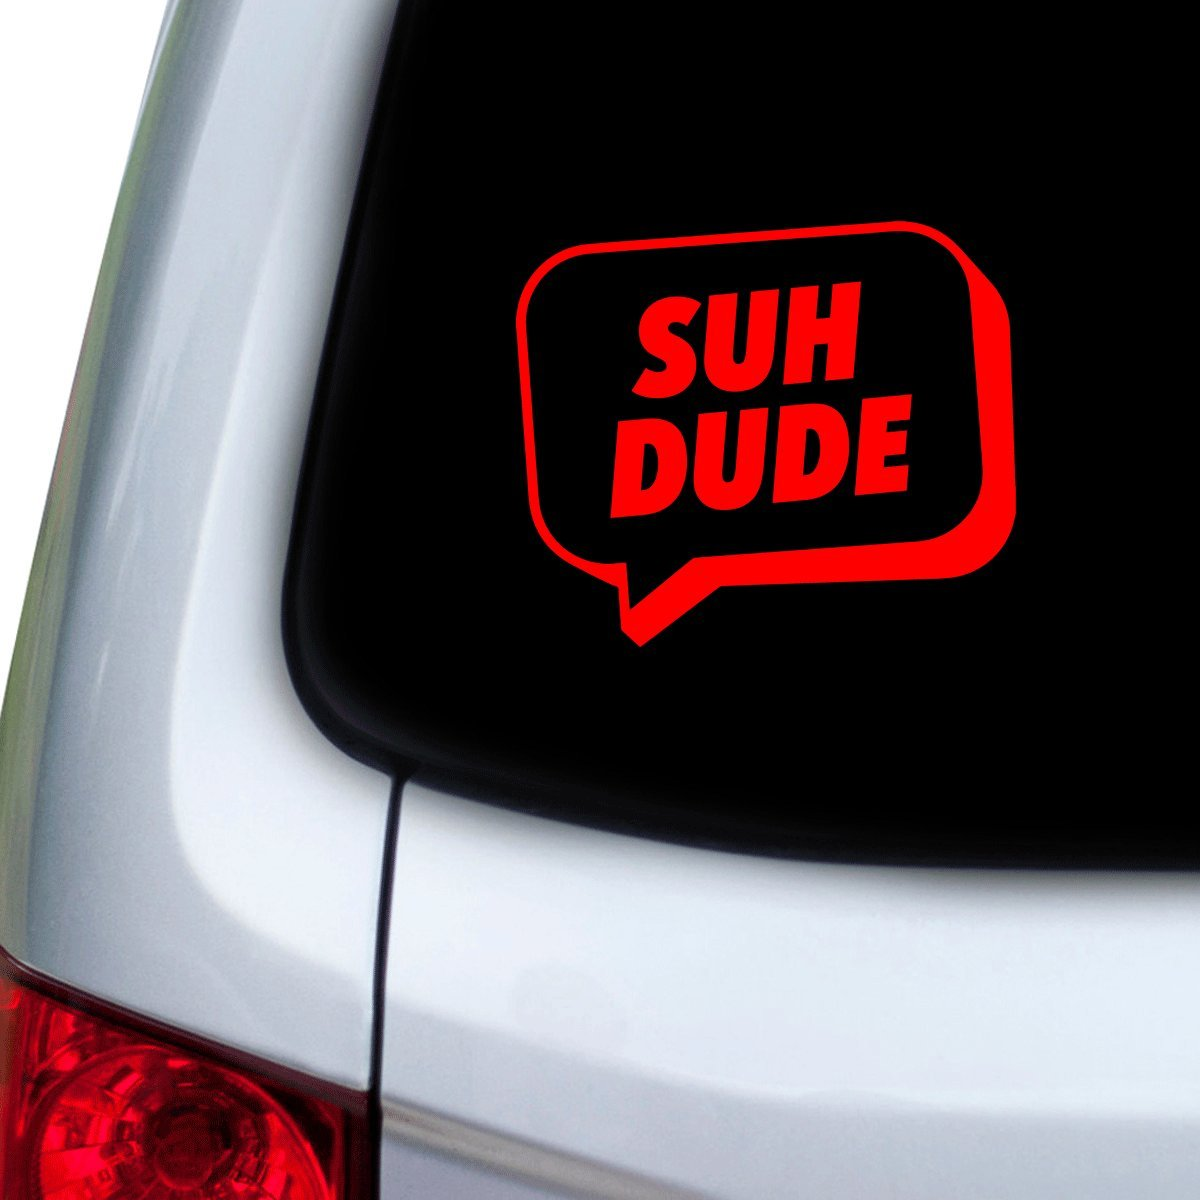 Hoods Red StickAny Car and Auto Decal Series Suh Dude Speech Bubble Sticker for Windows Doors